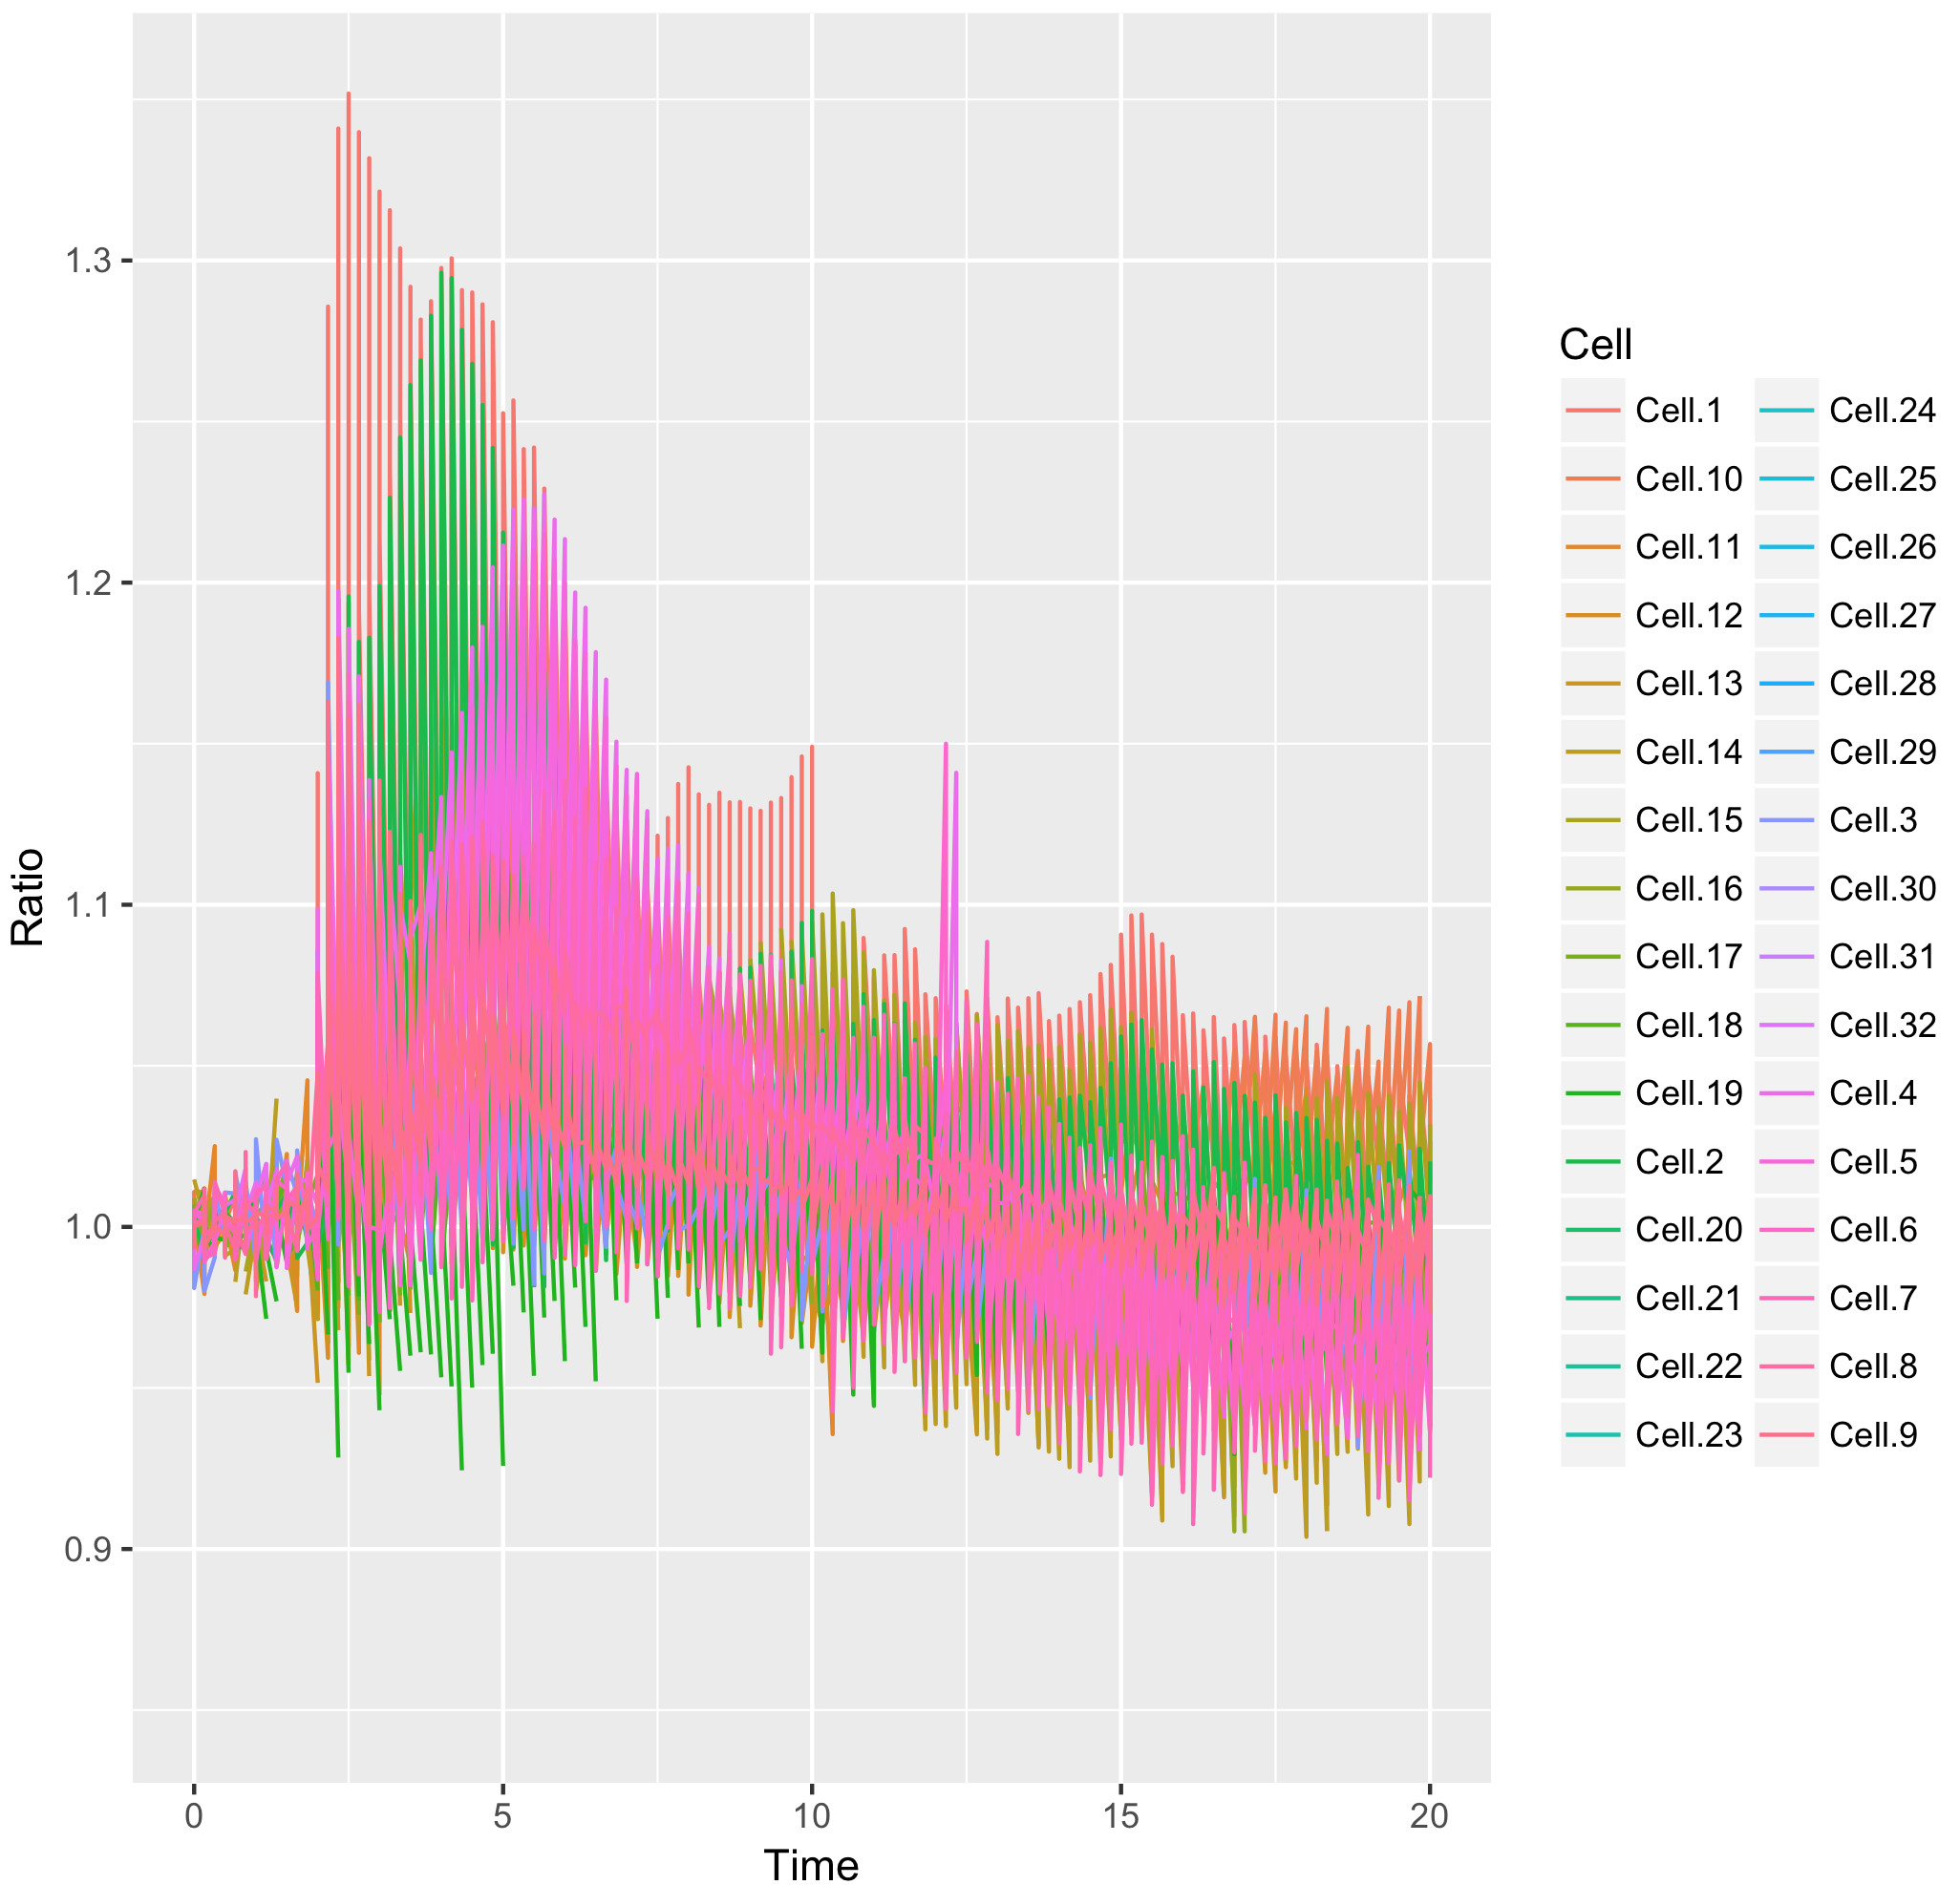 Visualizing data with R/ggplot2 - One more time - the Node